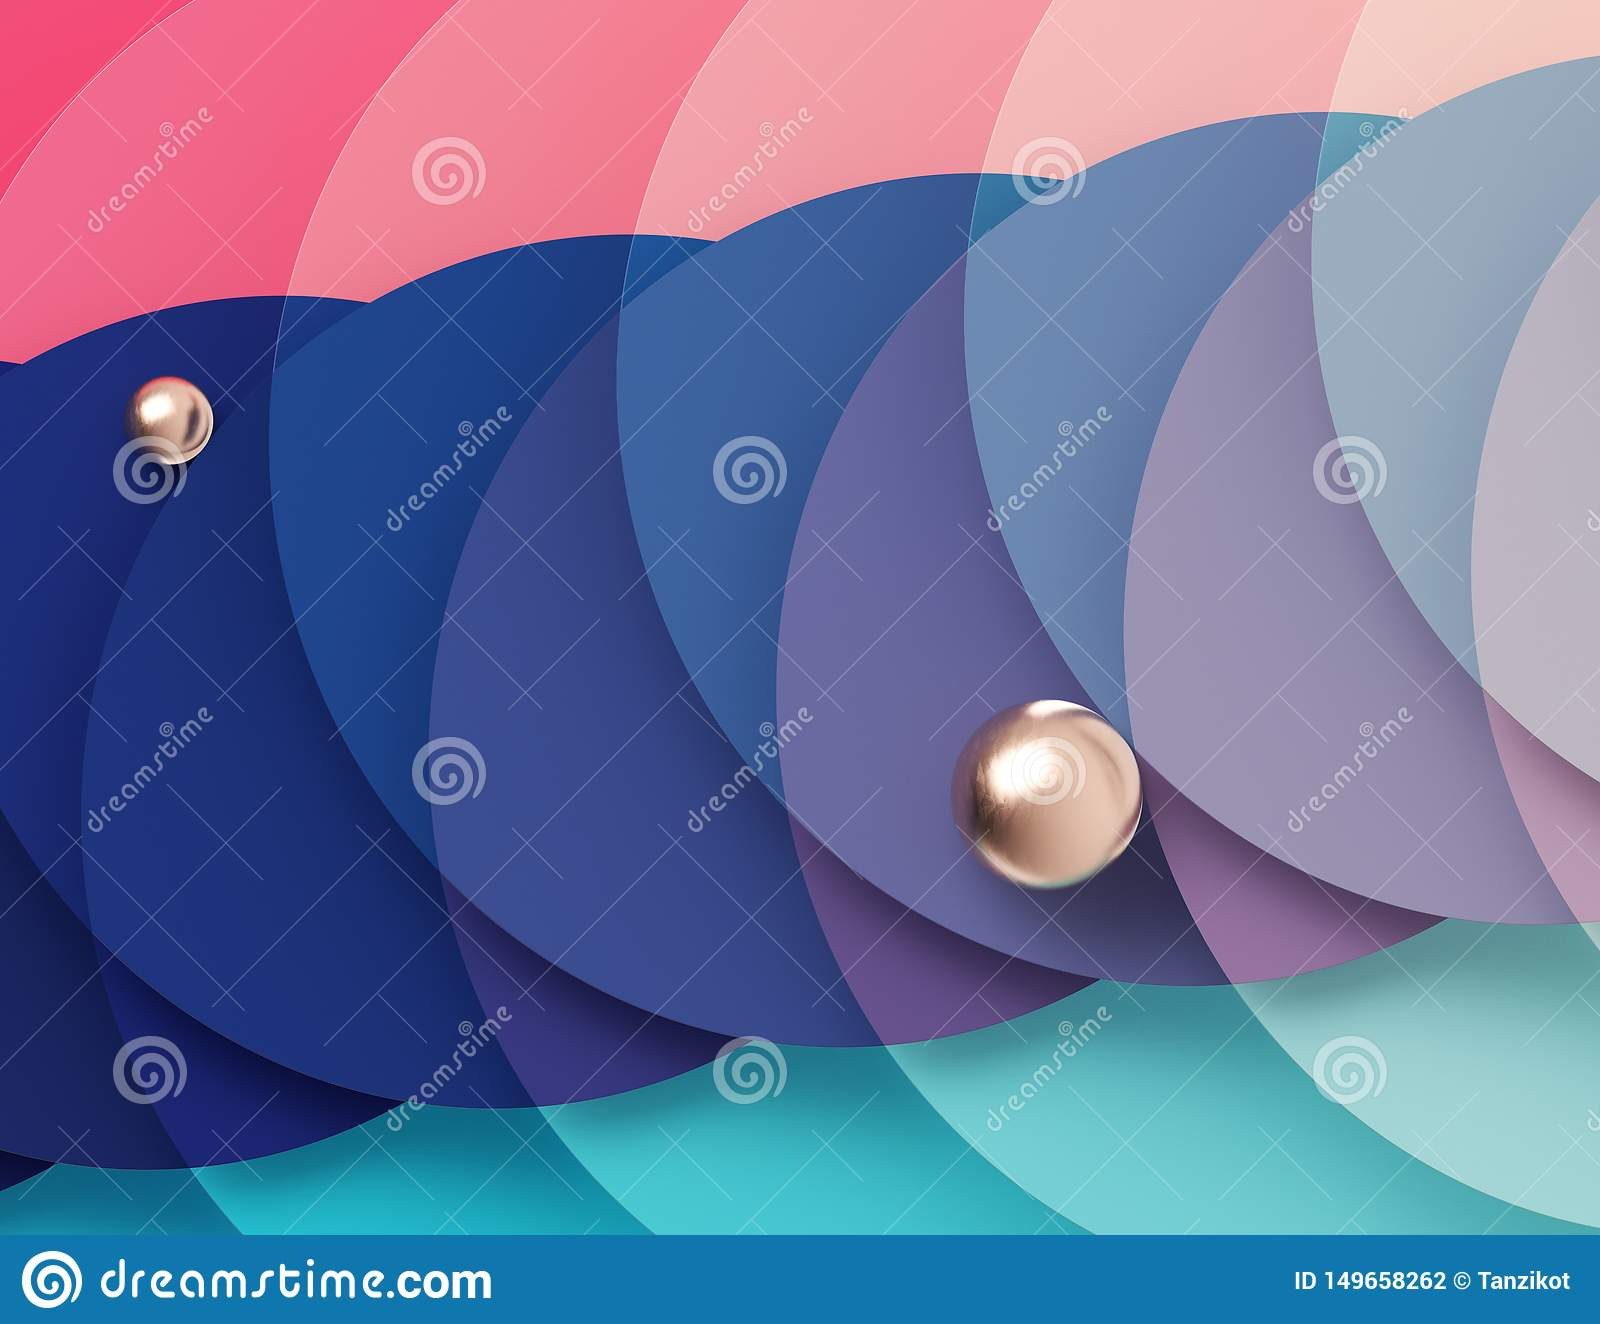 Bright multicolored geometric background formed by the intersection of pink and turquoise circles